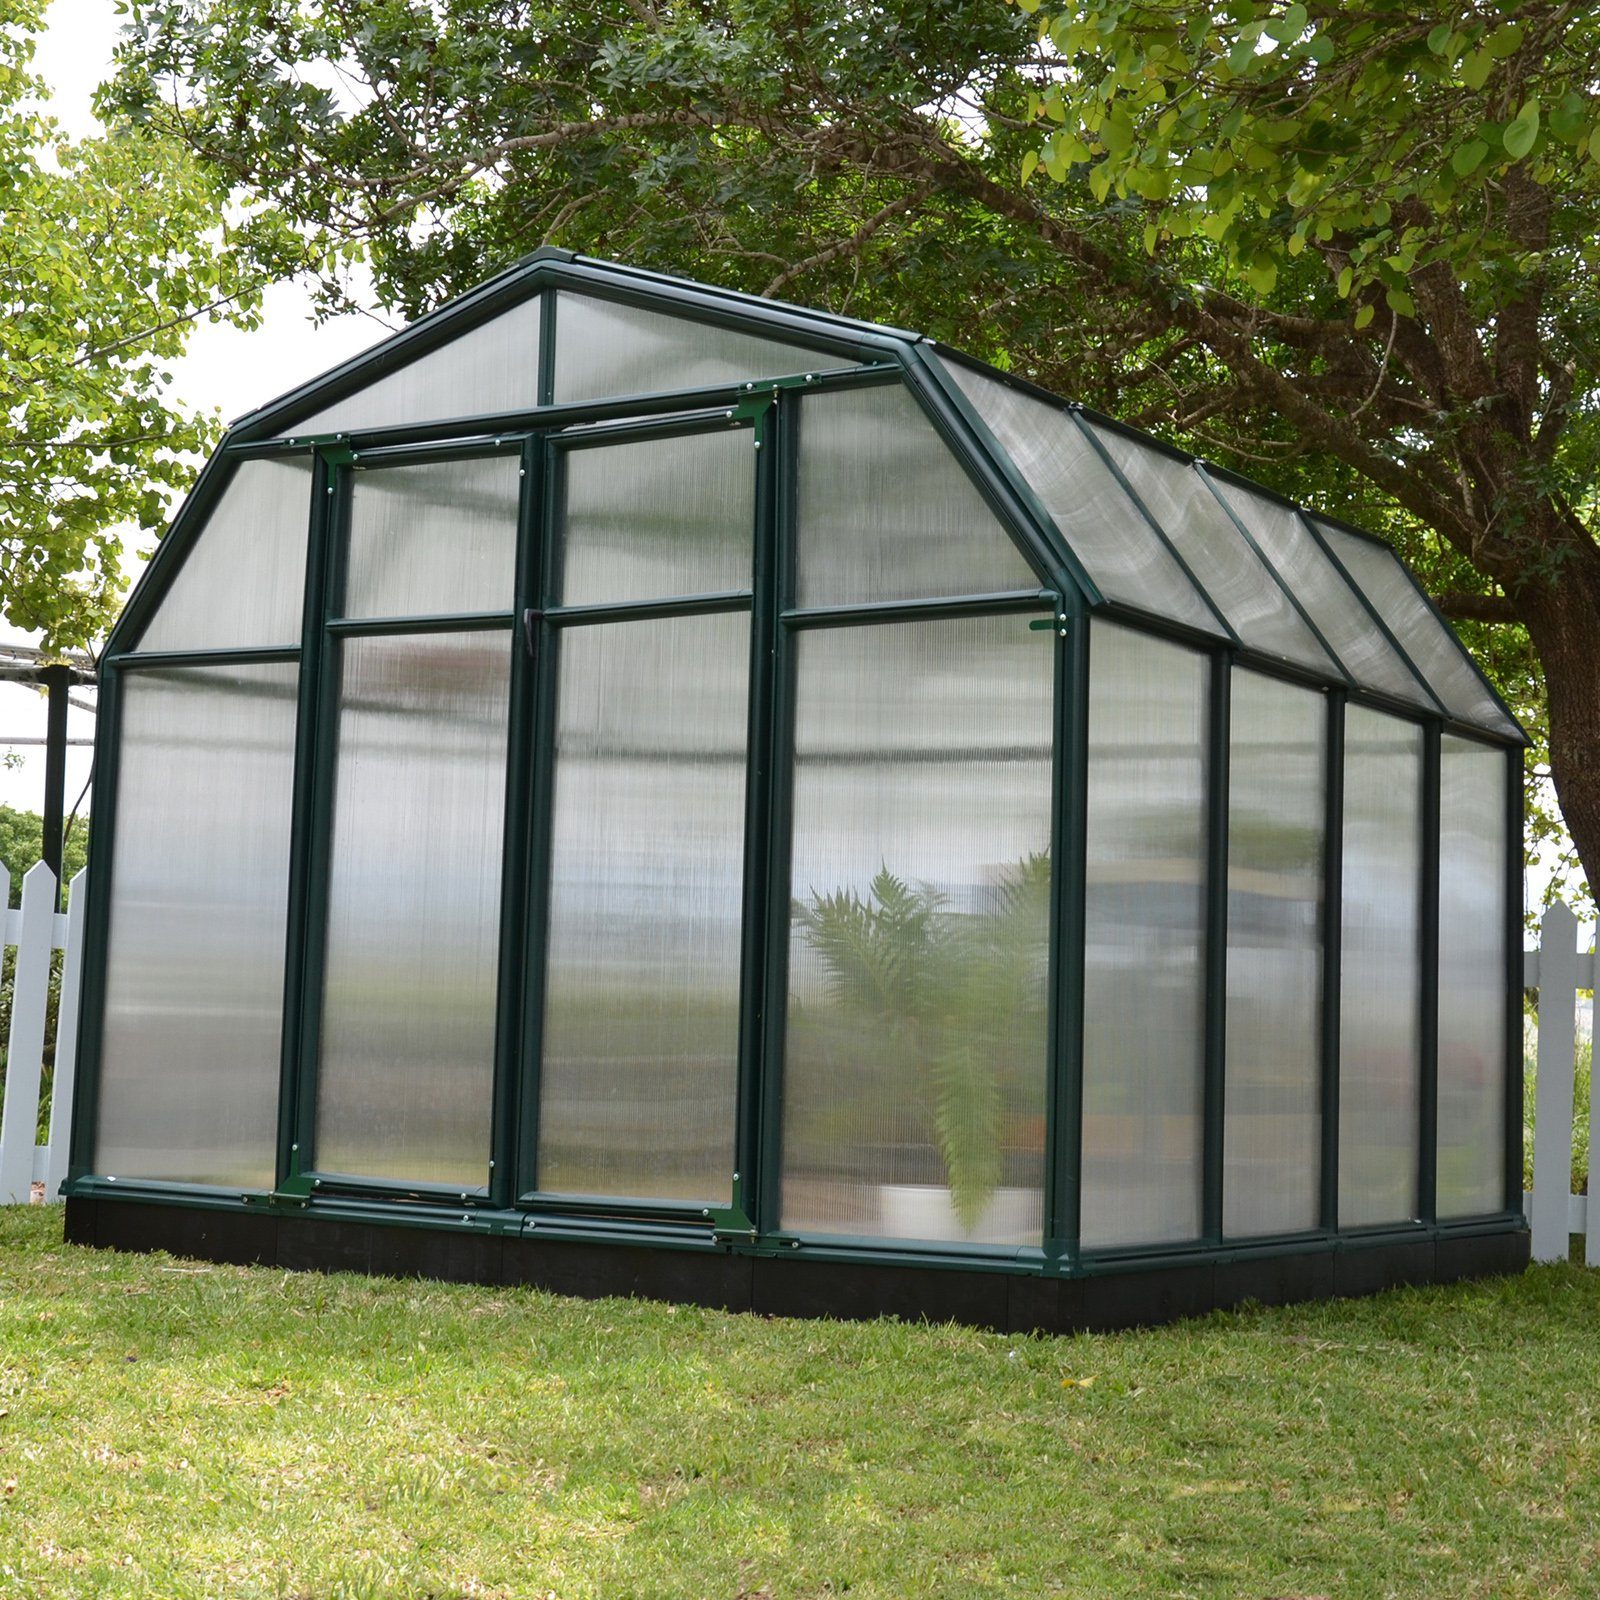 rion hobby gardener 2 greenhouse in 2019 products polycarbonate rh pinterest com